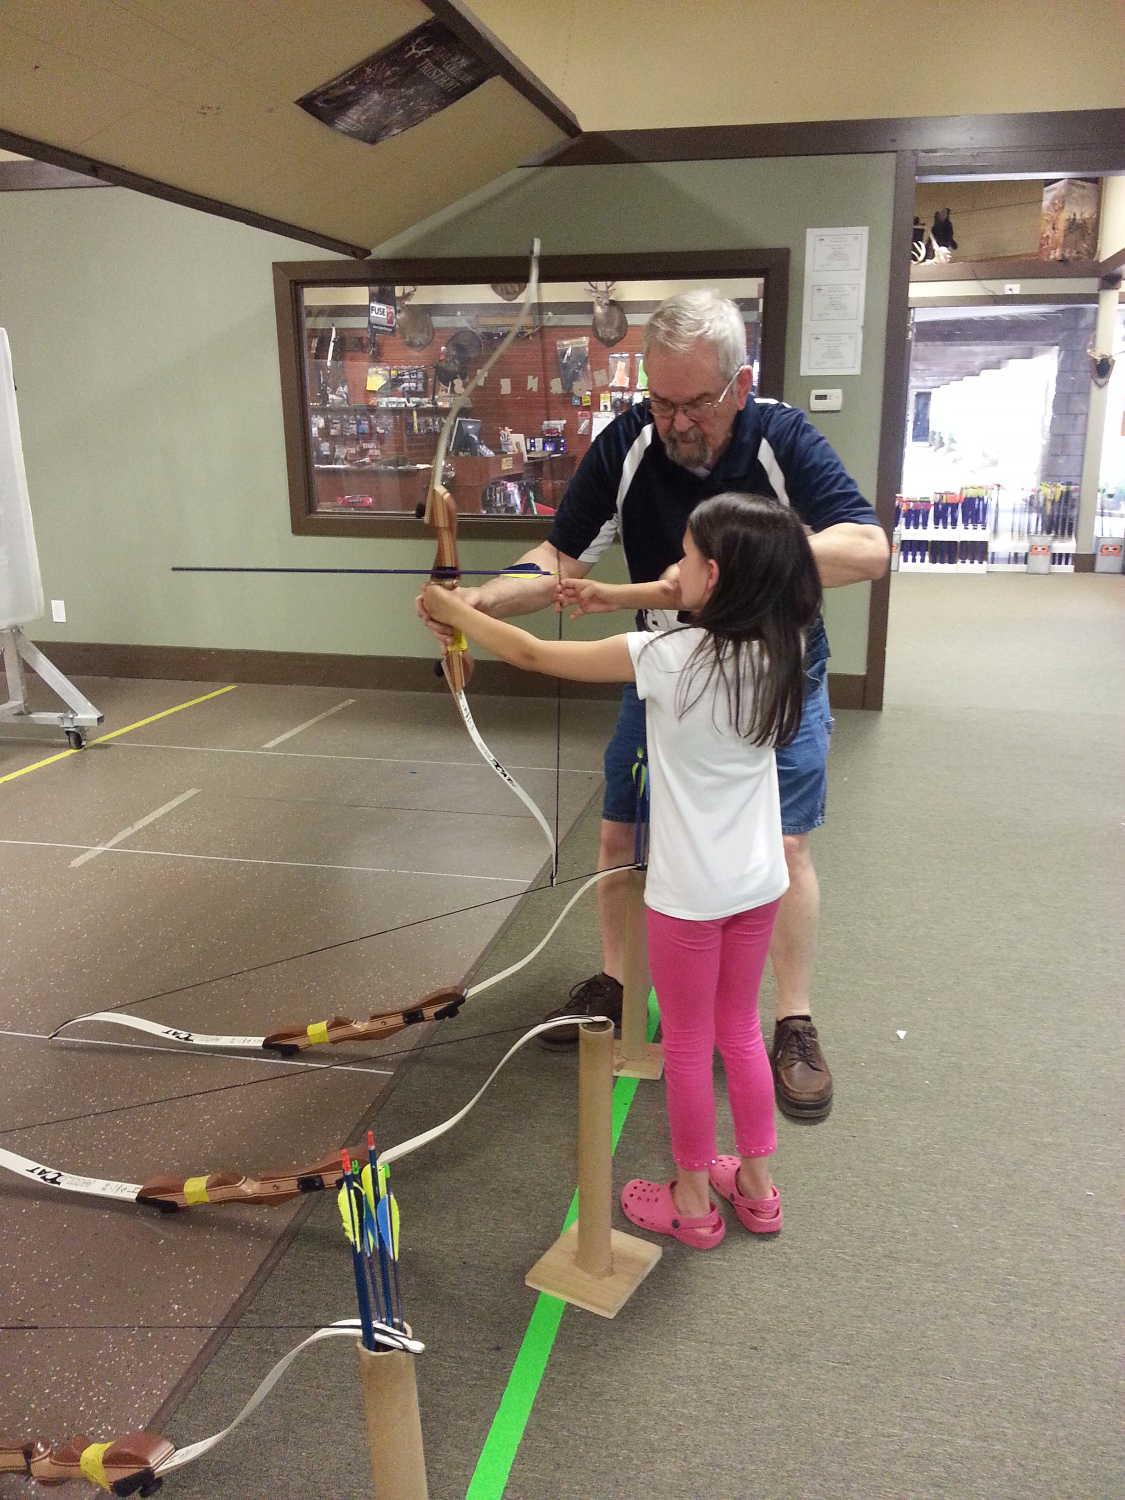 CWK girl indoor Archery Lessons